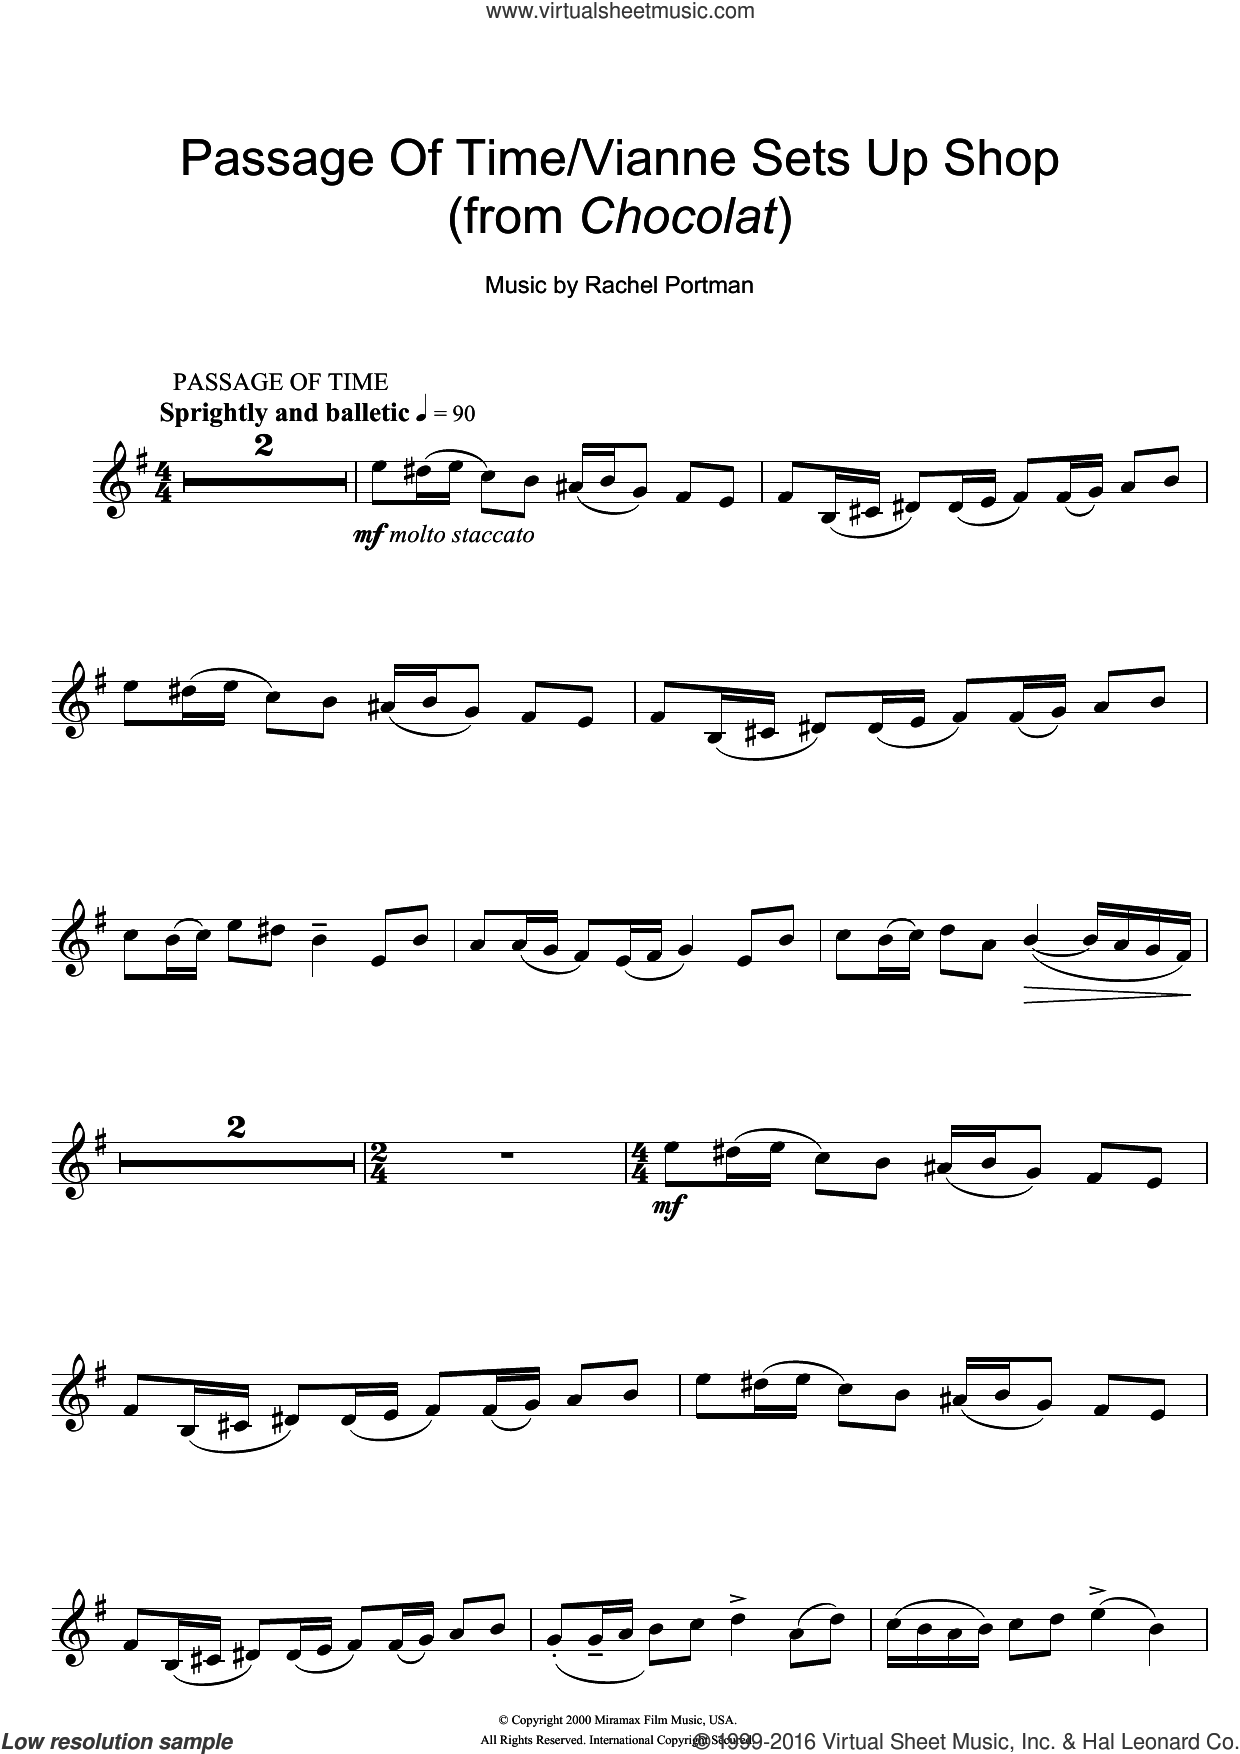 Passage Of Time/Vianne Sets Up Shop (from Chocolat) sheet music for violin solo by Rachel Portman, intermediate. Score Image Preview.